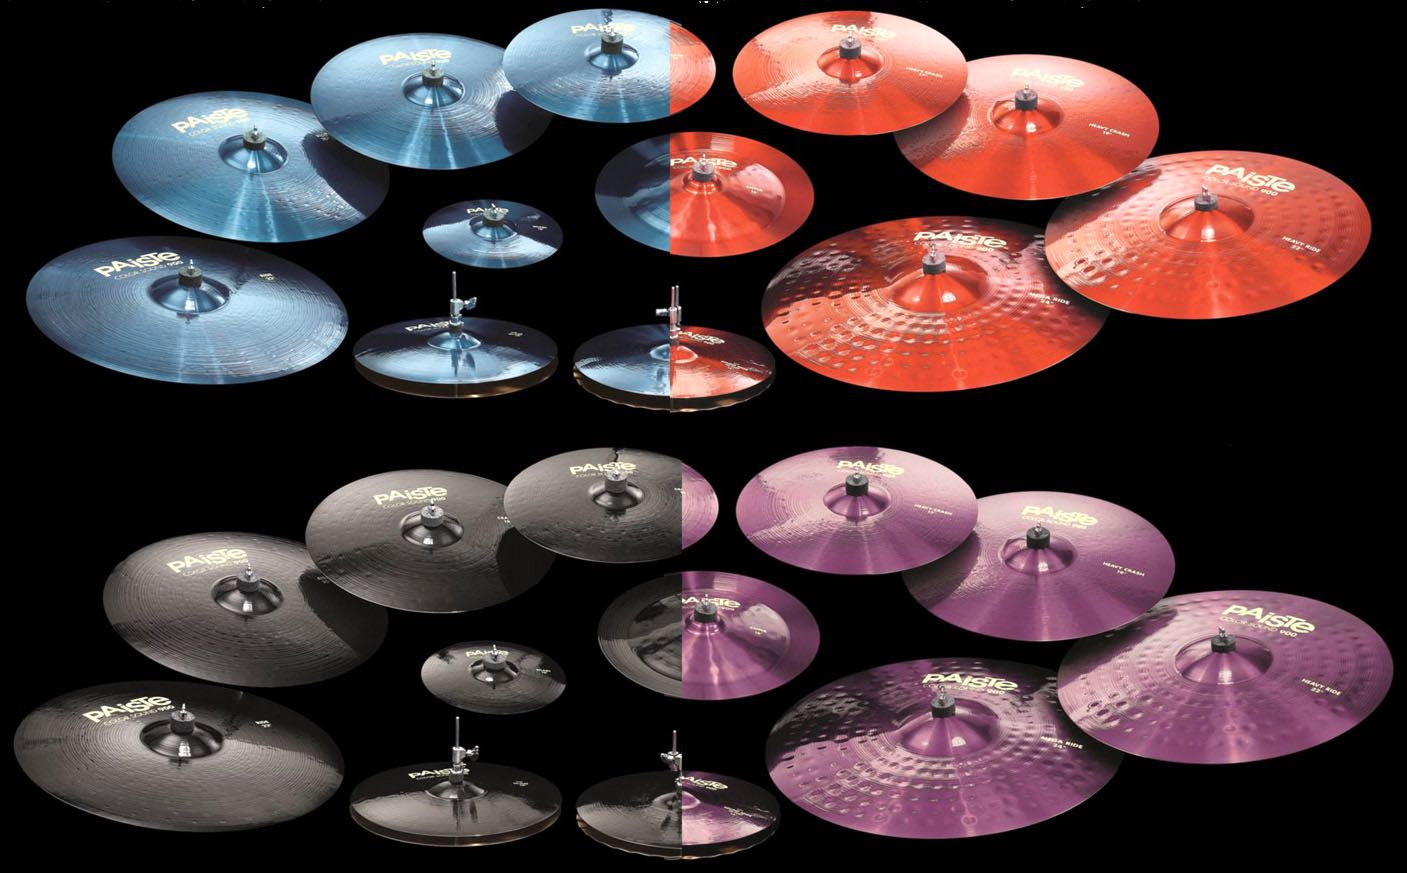 paiste 900 color sound cymbal selection mike dolbear